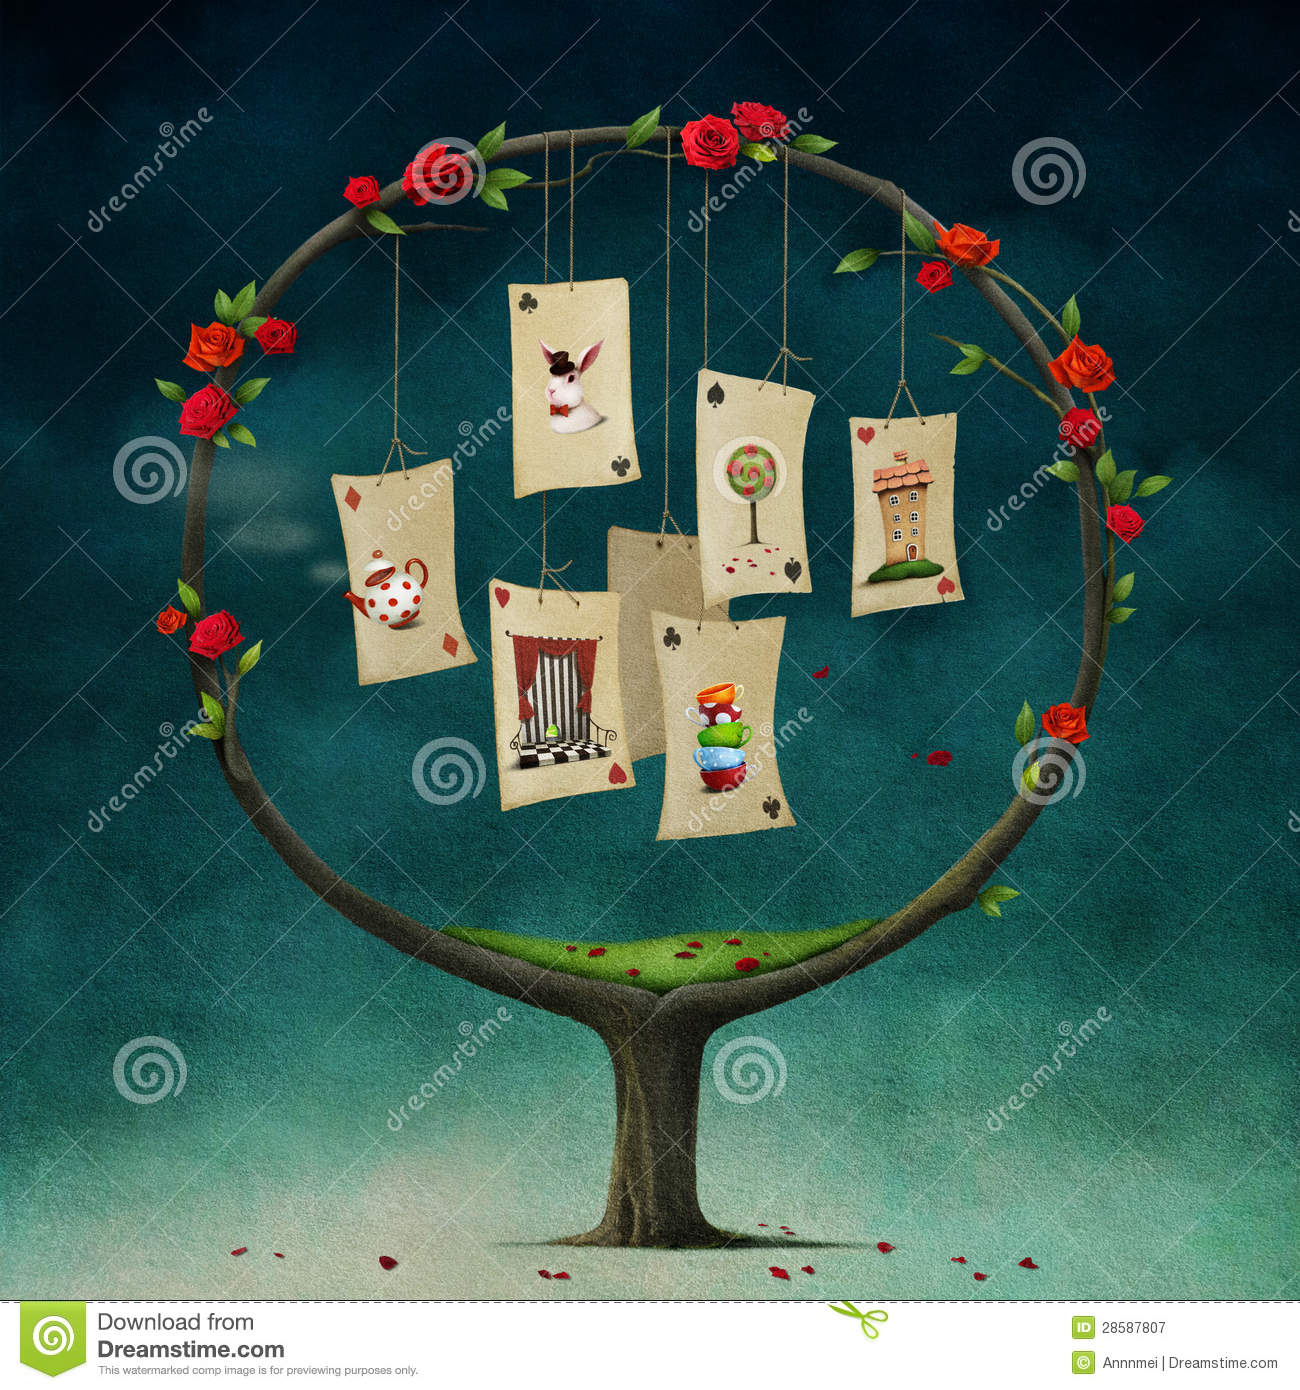 Tree with cards